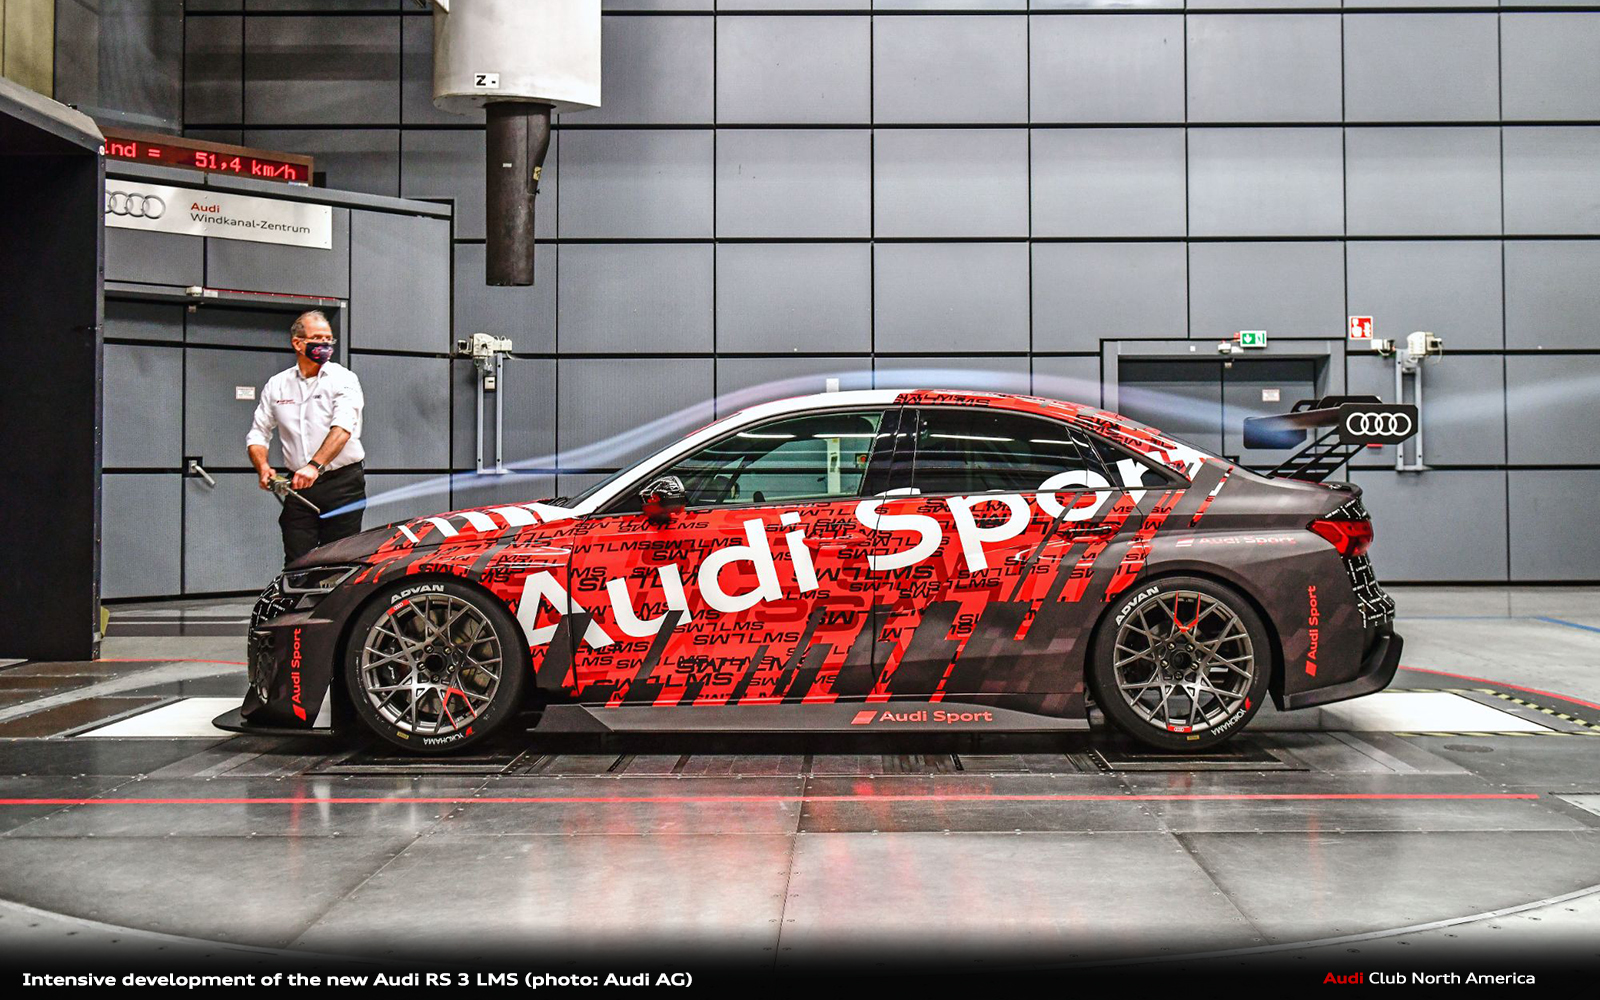 Intensive Development of the New Audi RS 3 LMS